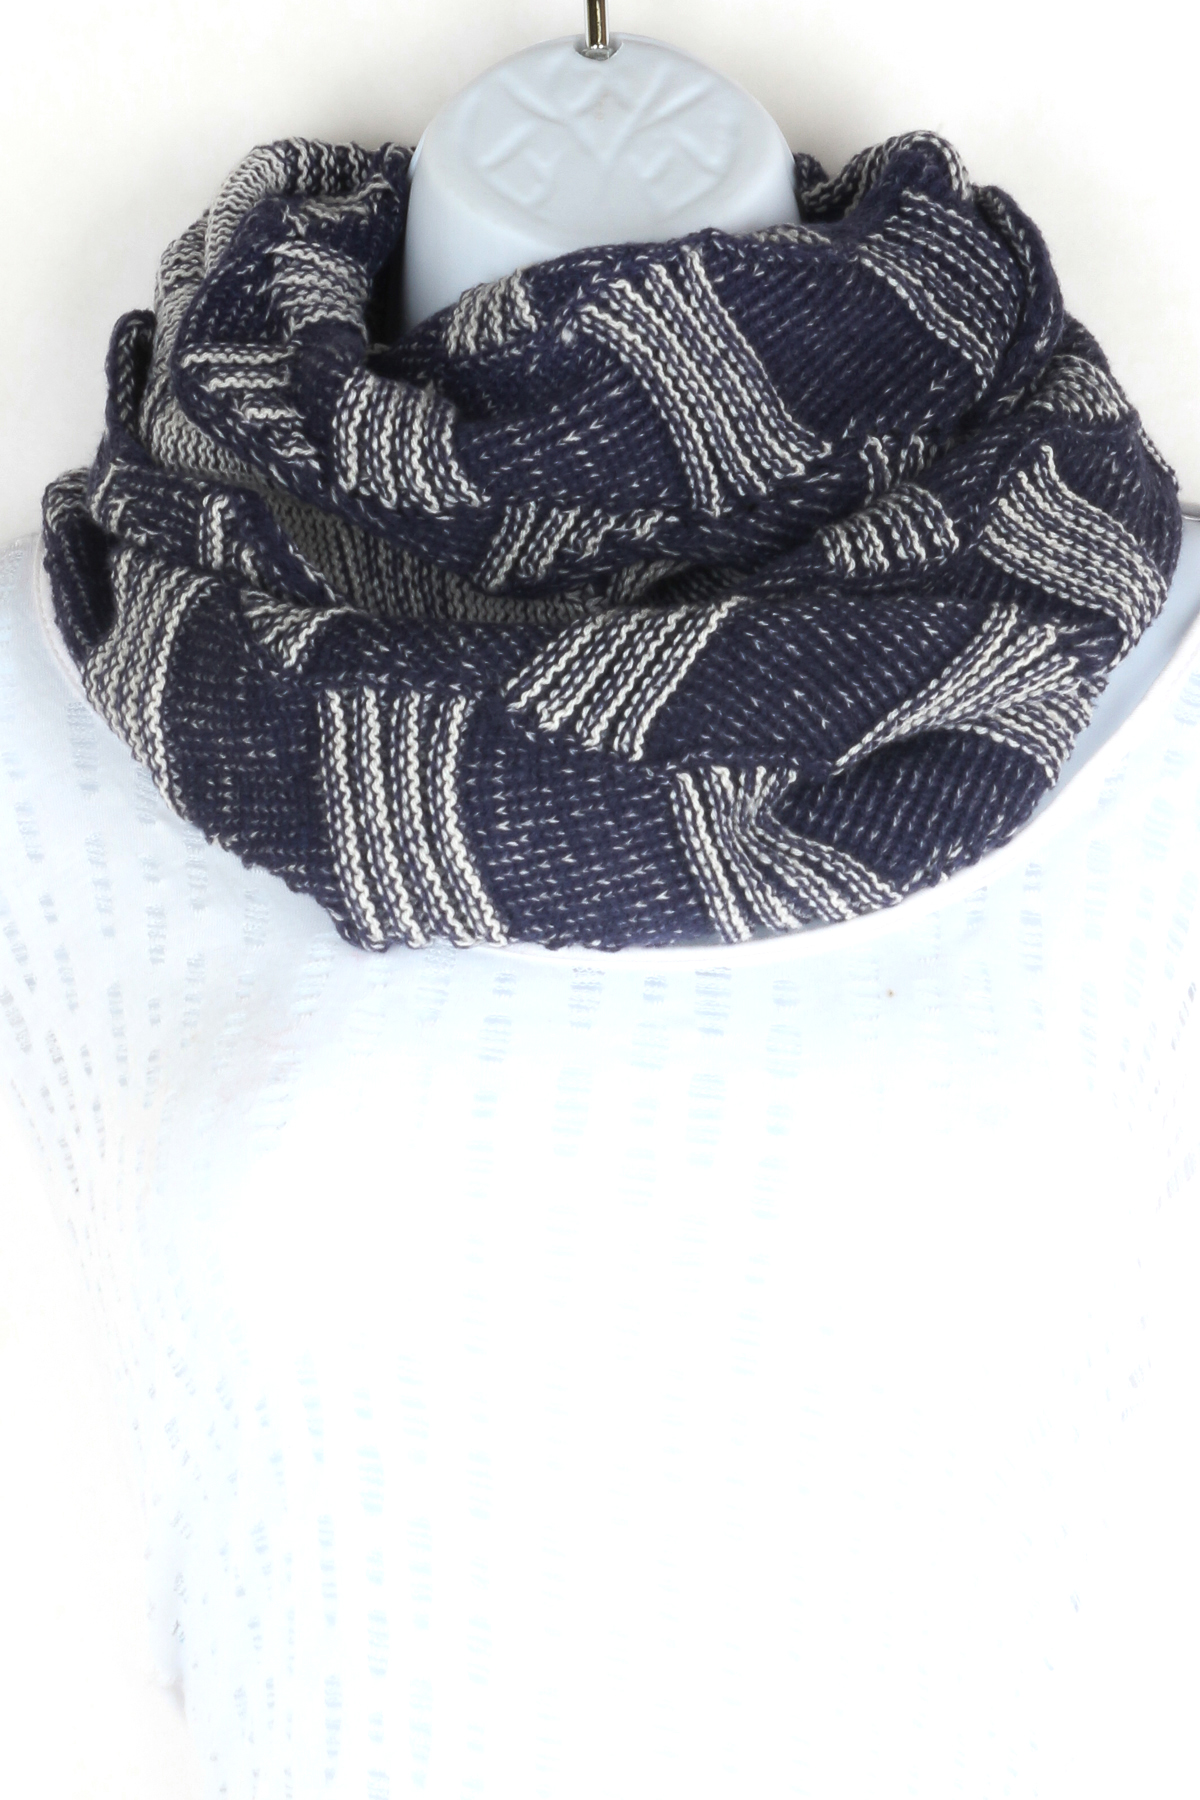 Knitting Pattern Wavy Scarf : Knitted Wavy Infinity Scarf - Scarves